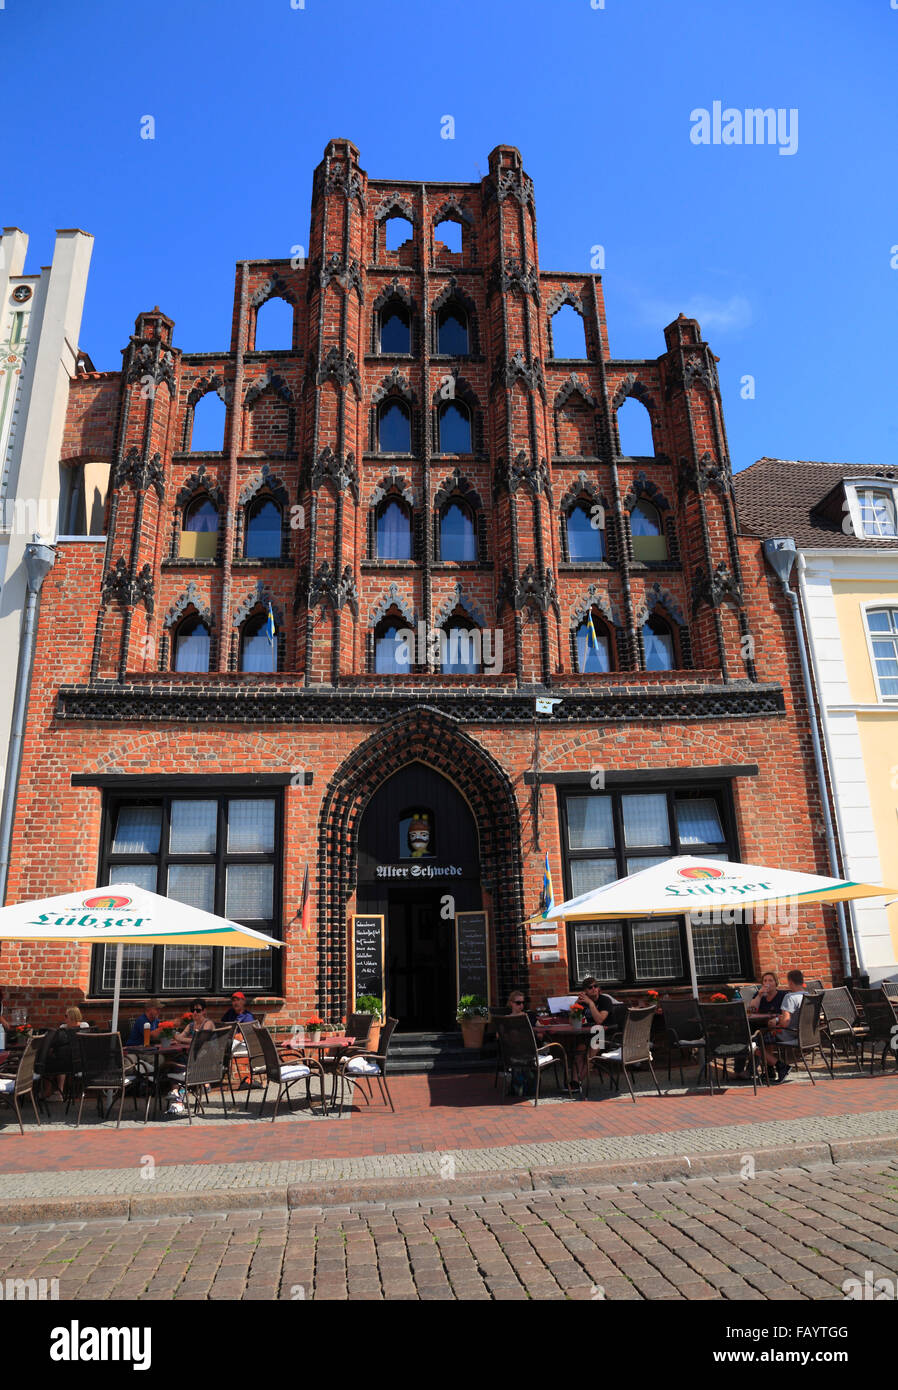 Restaurant ALTER SCHWEDE at market square, Wismar, Baltic Sea, Mecklenburg Western Pomerania, Germany, Europe - Stock Image